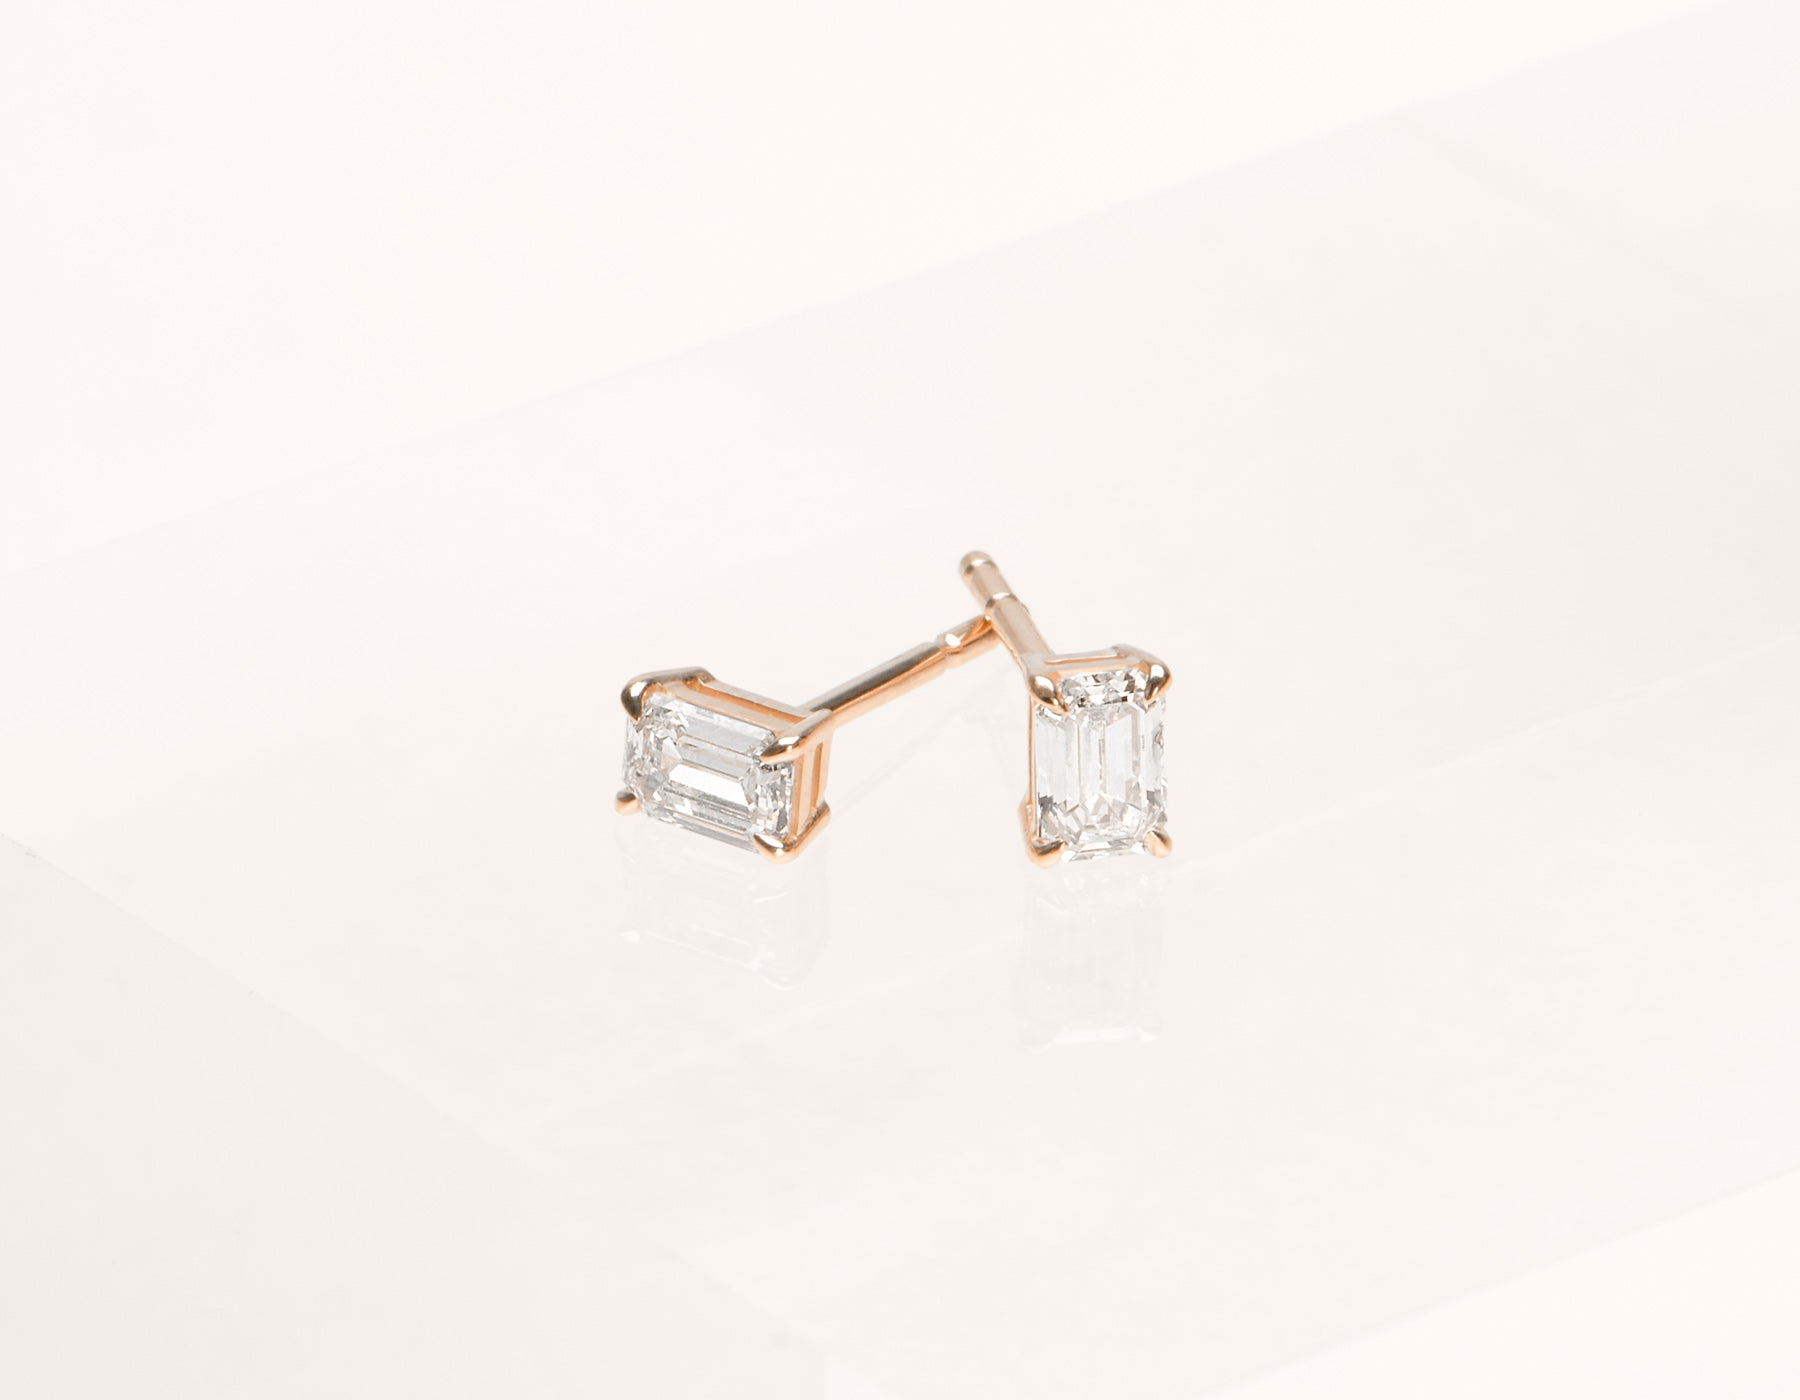 Vrai and oro 1.0 ct Emerald Diamond earrings 18k Solid gold classic minimalist, 18K Rose Gold